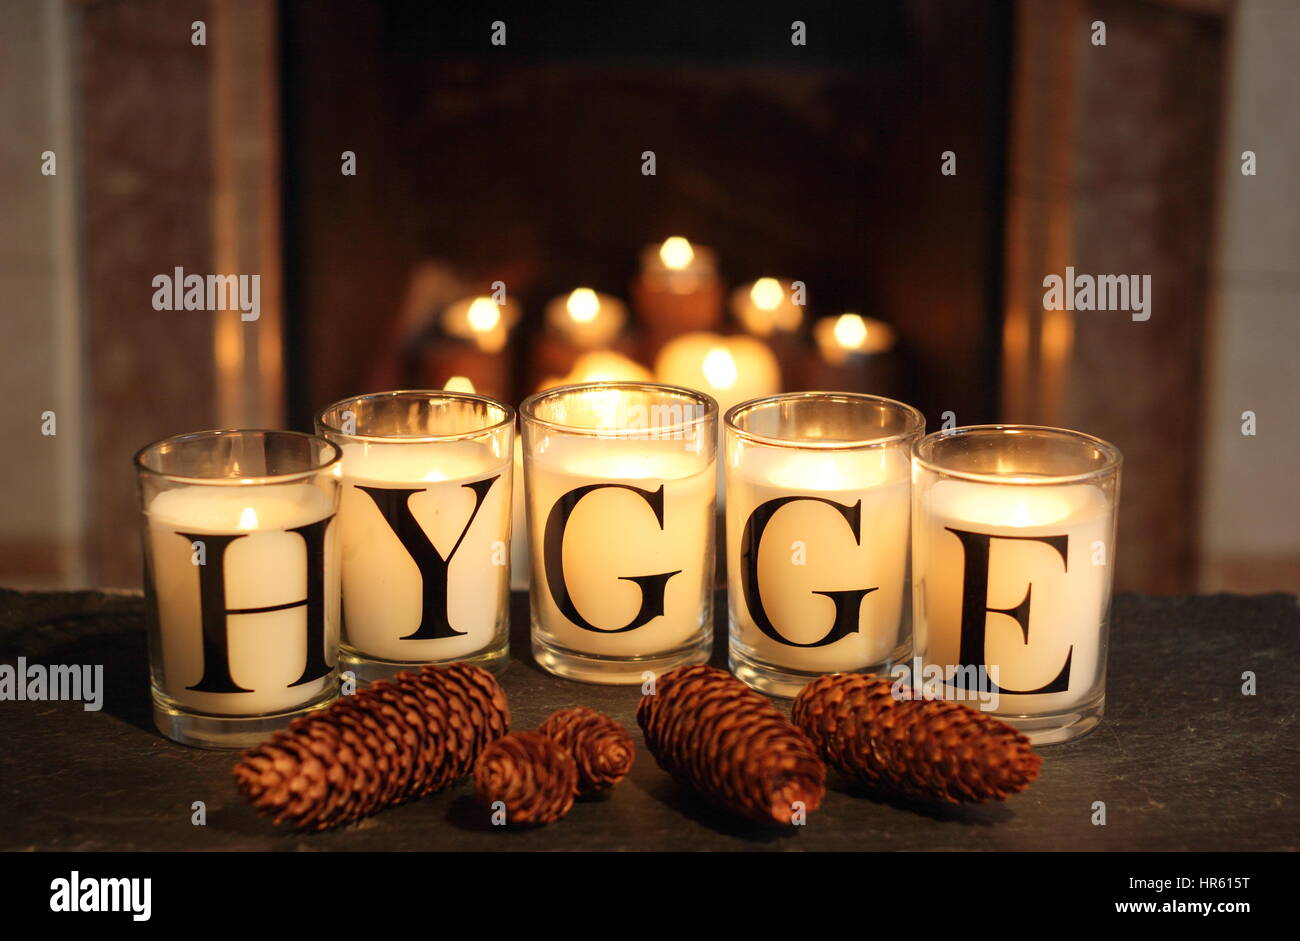 Fireside candles in an English home in winter depict 'hygge' - the Danish concept of embracing cosy contentment - Stock Image